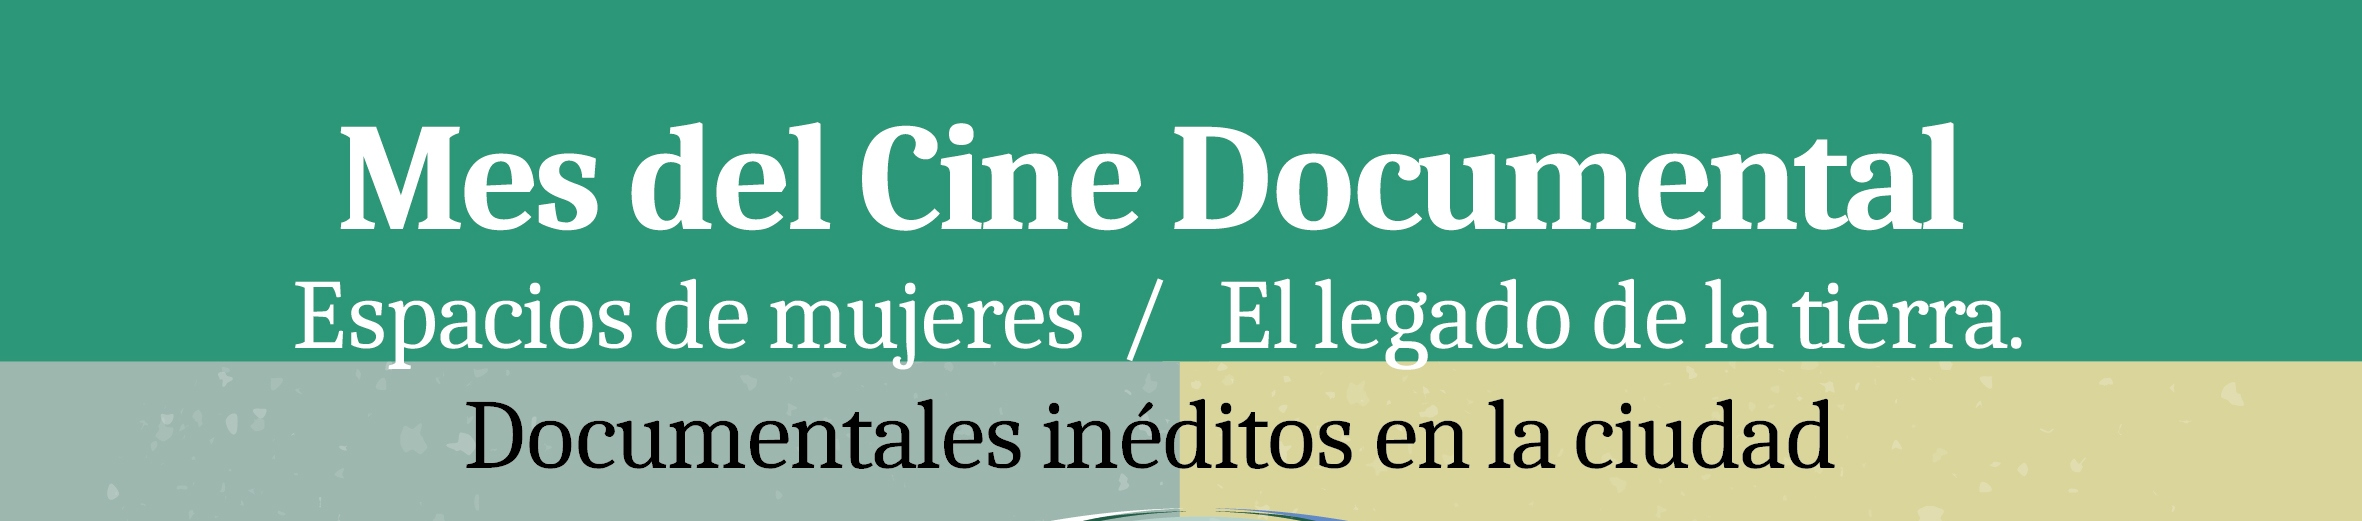 Especial mes del cine documental